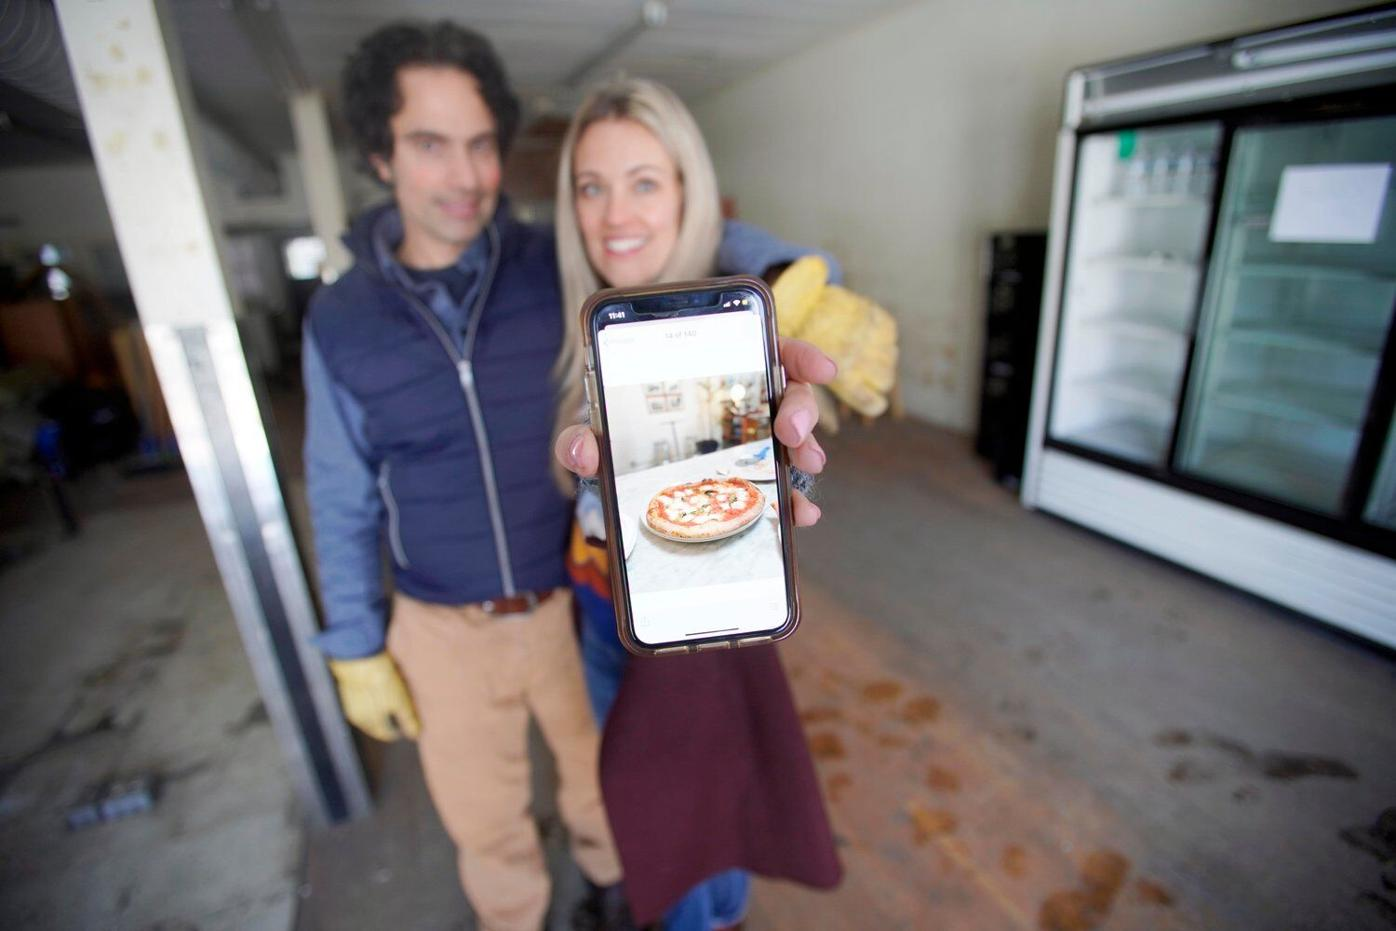 New Lenox pizza store owners: 'Everyone will win for this'